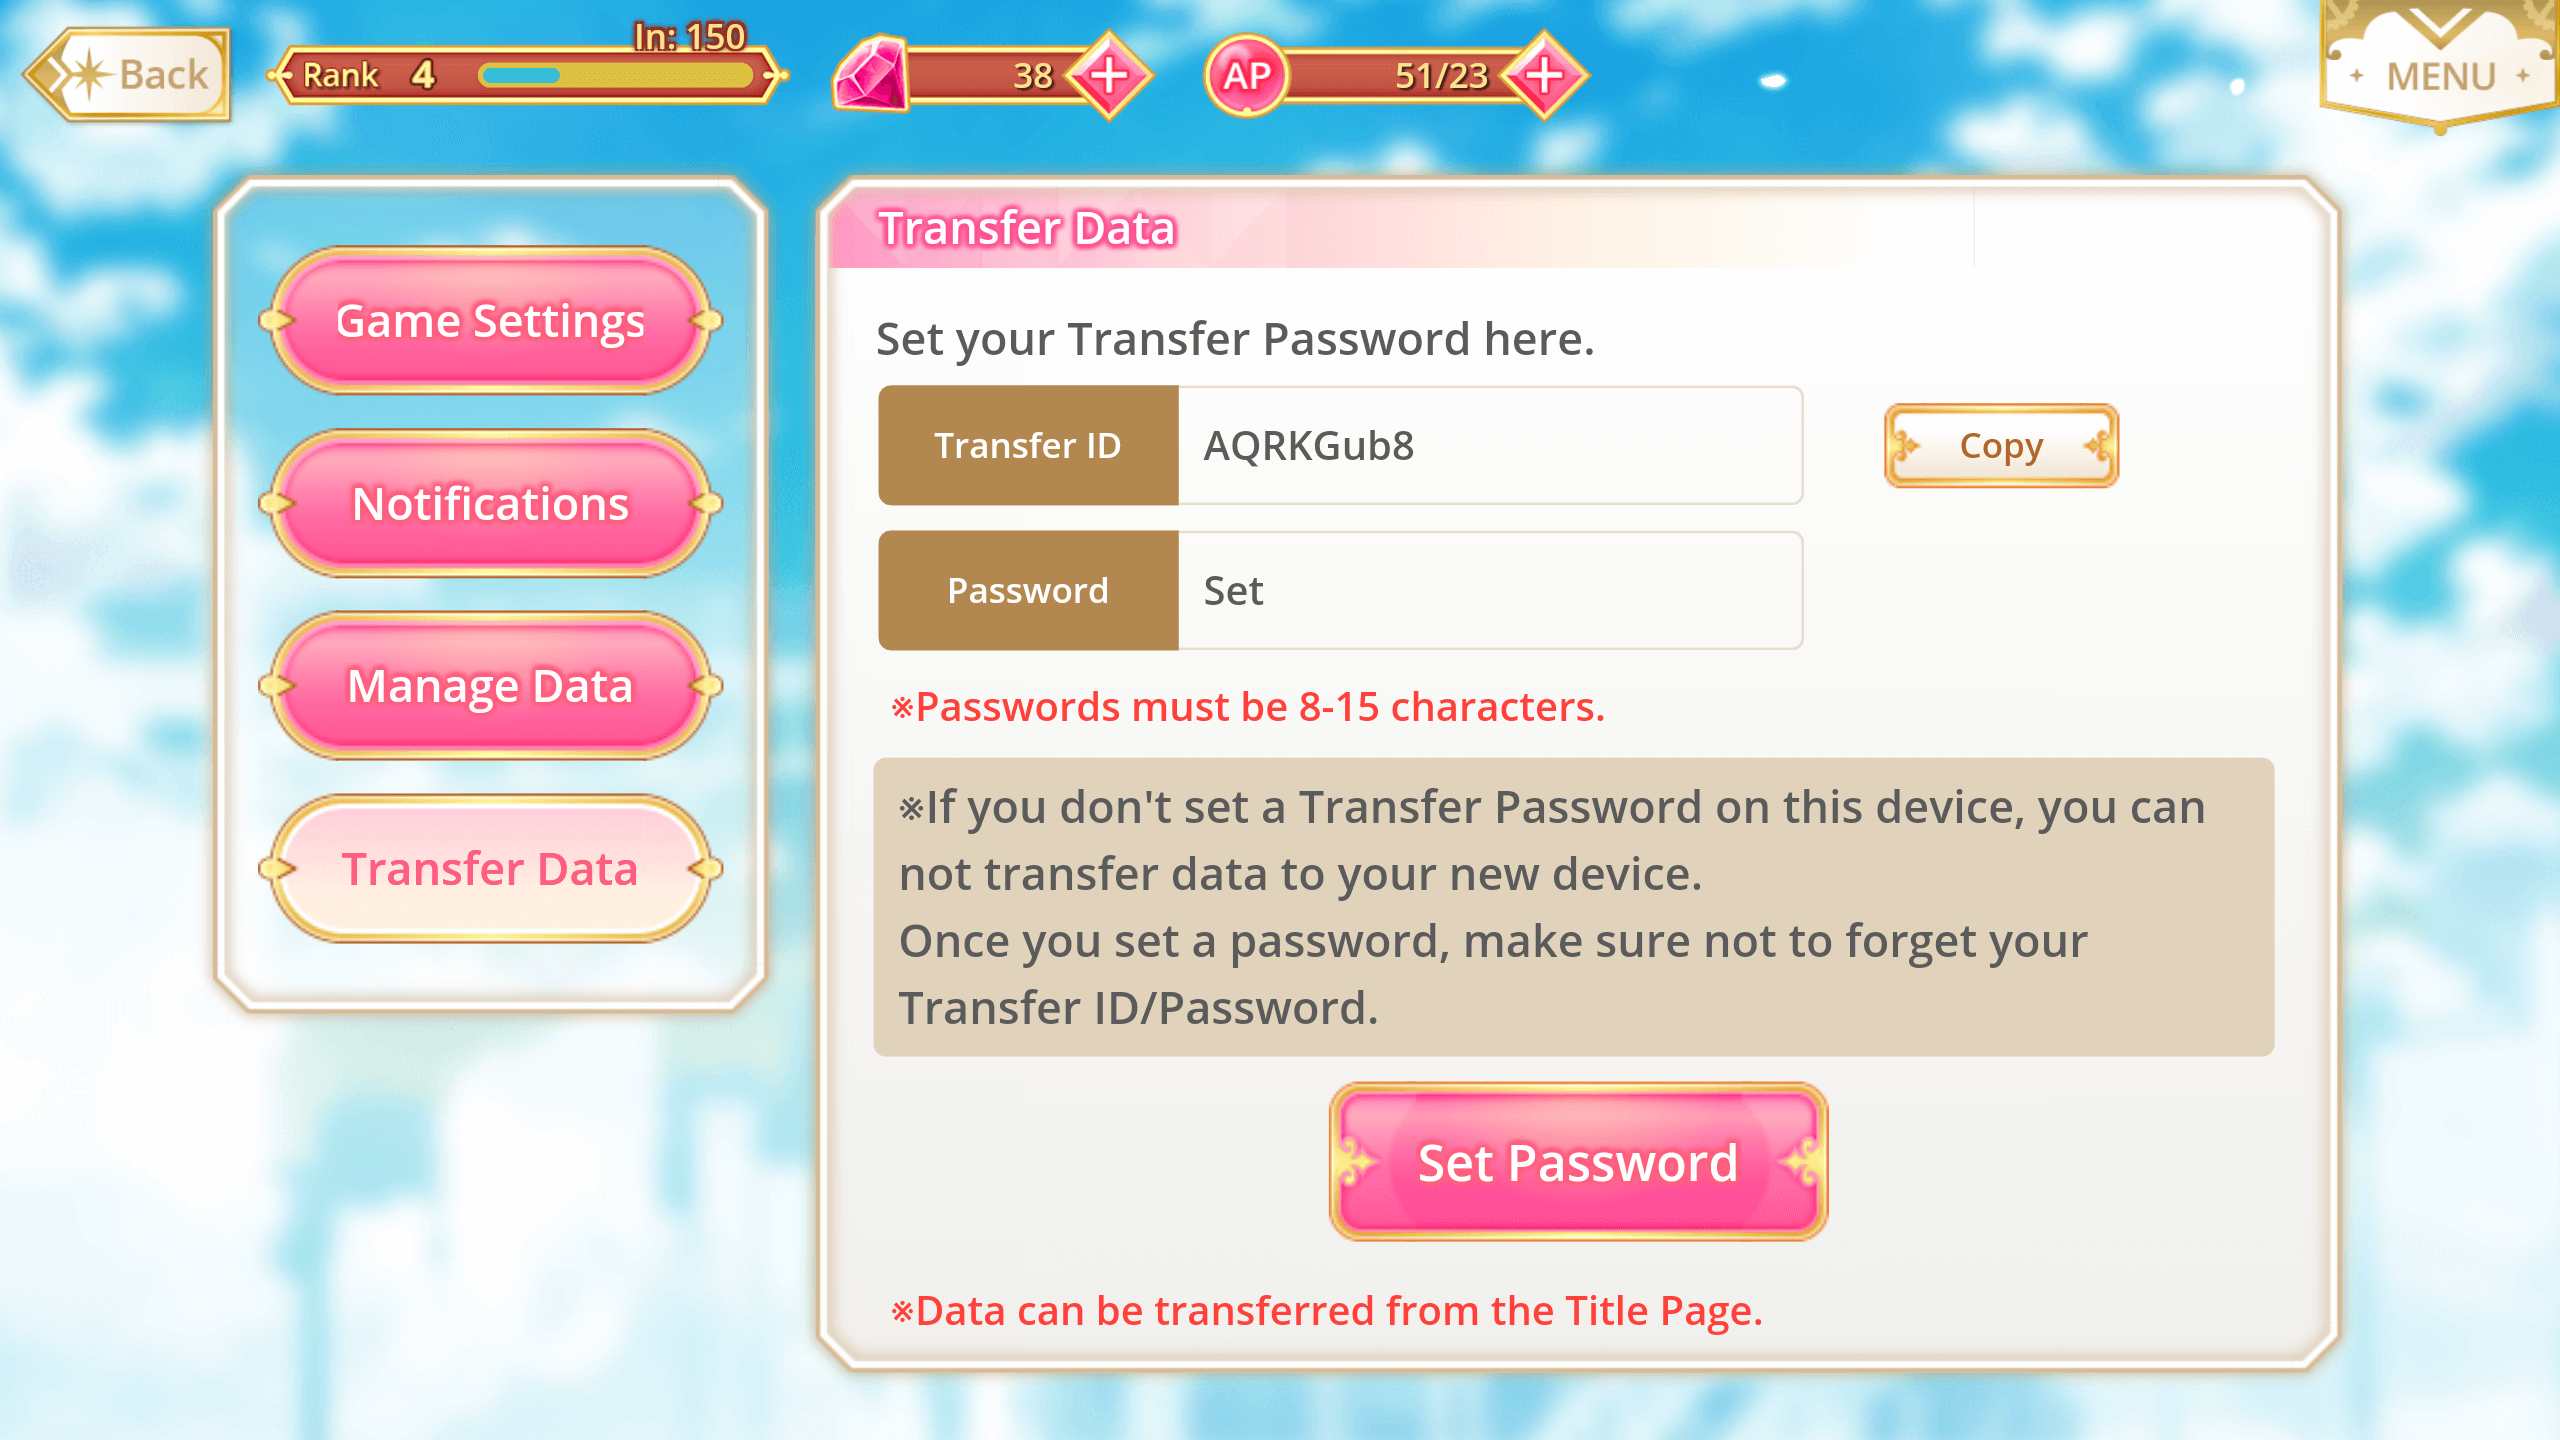 Transfer Data Settings